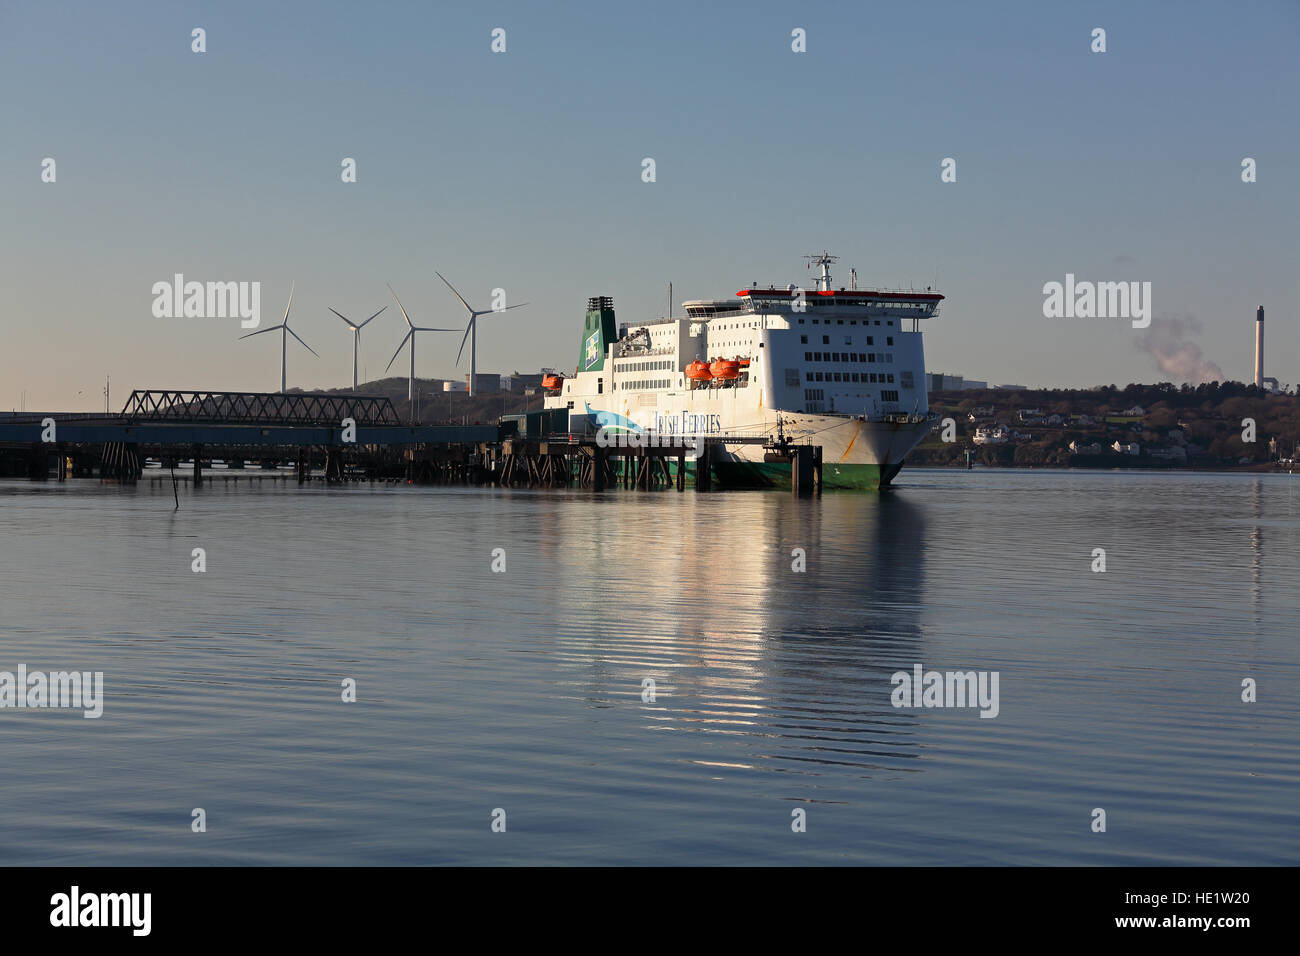 Long distance picture of the large ferry the 'Isle of Inishmore' at berth and making ready to depart for - Stock Image